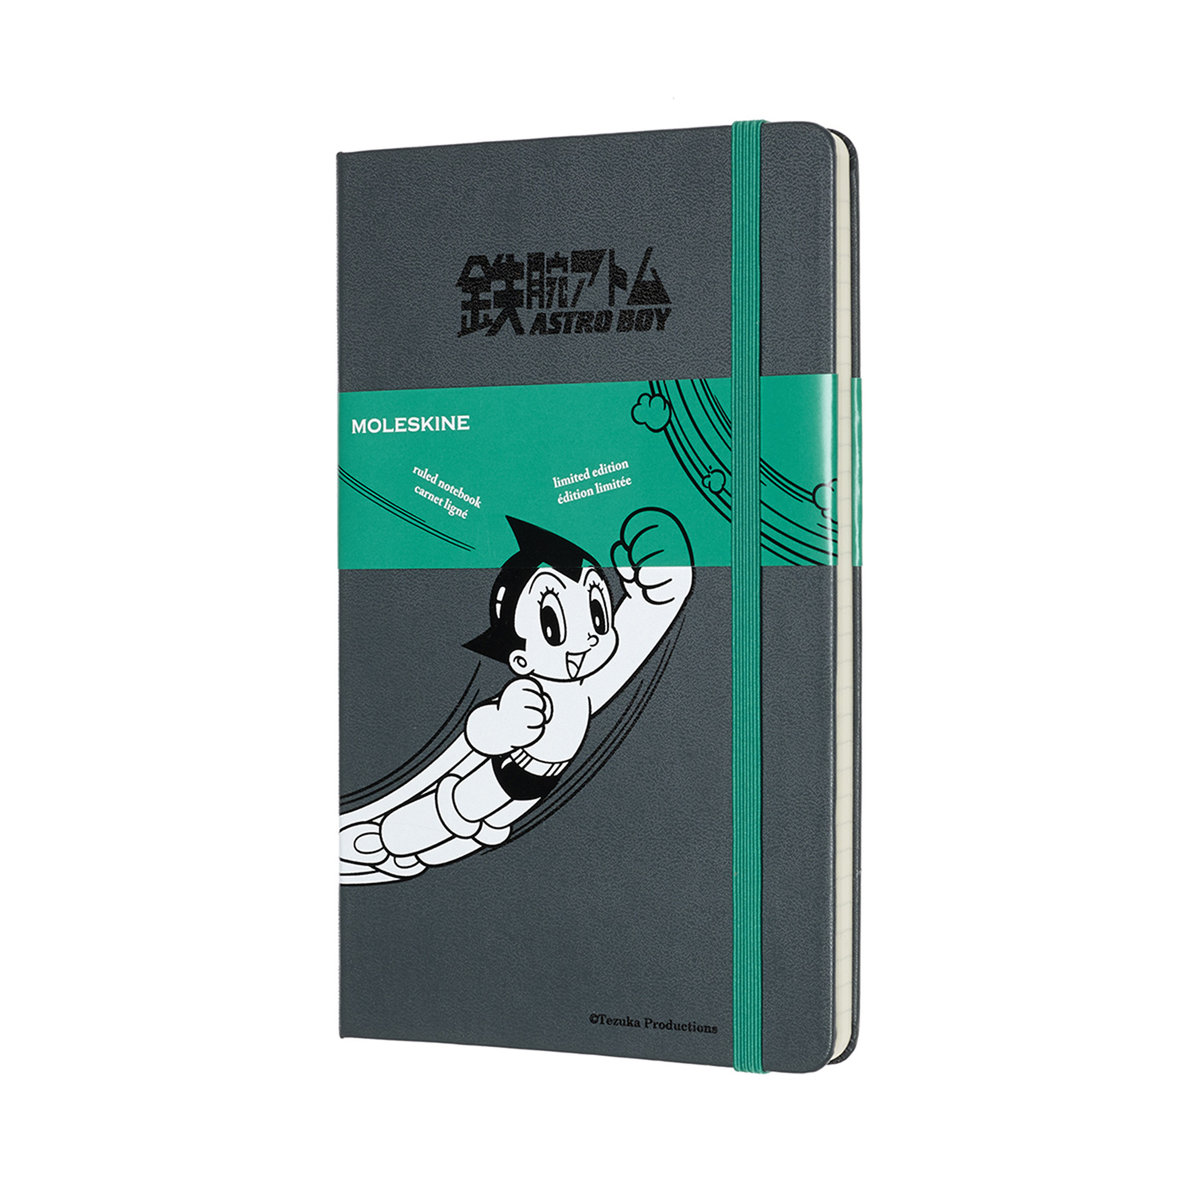 Moleskine Limited Edition Notebook ASTRO BOY Large Ruled DARK GREY